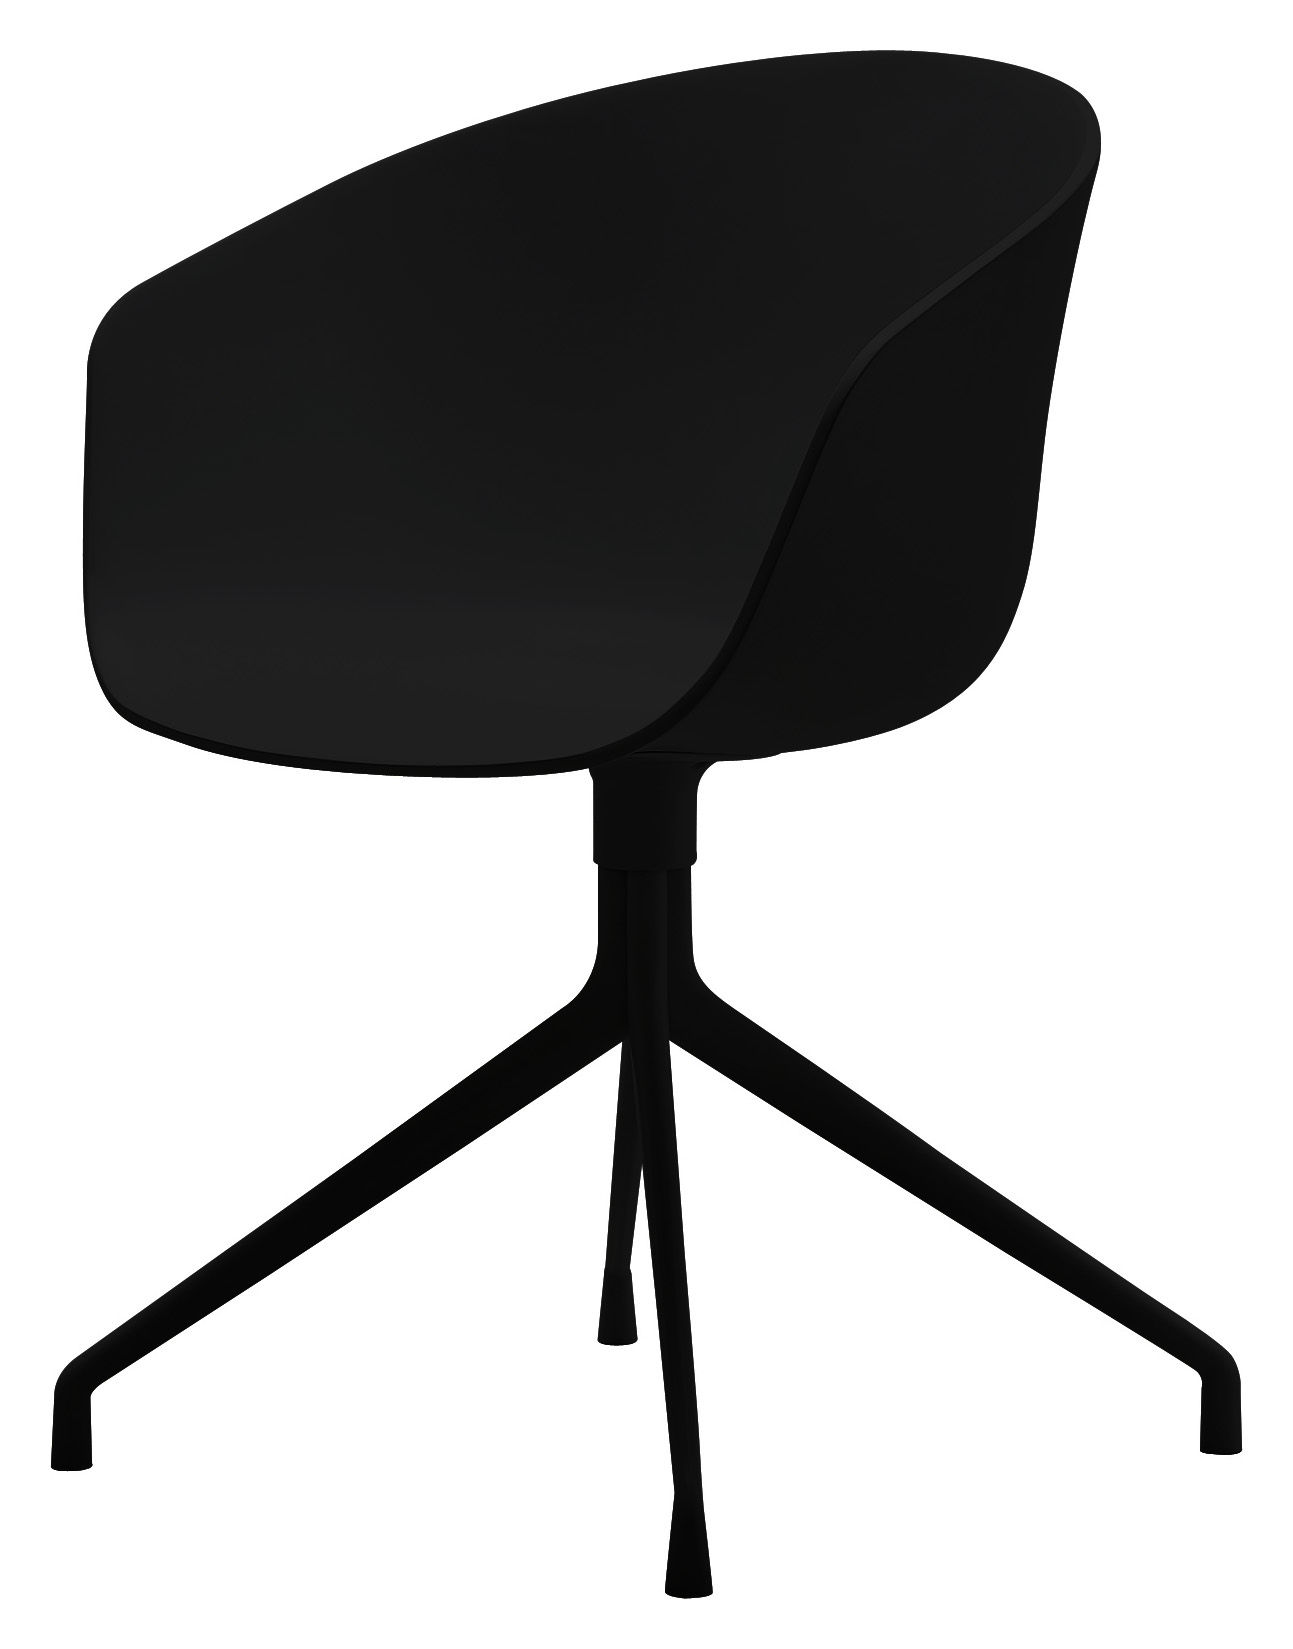 fauteuil pivotant about a chair 4 pieds noir pied noir hay. Black Bedroom Furniture Sets. Home Design Ideas